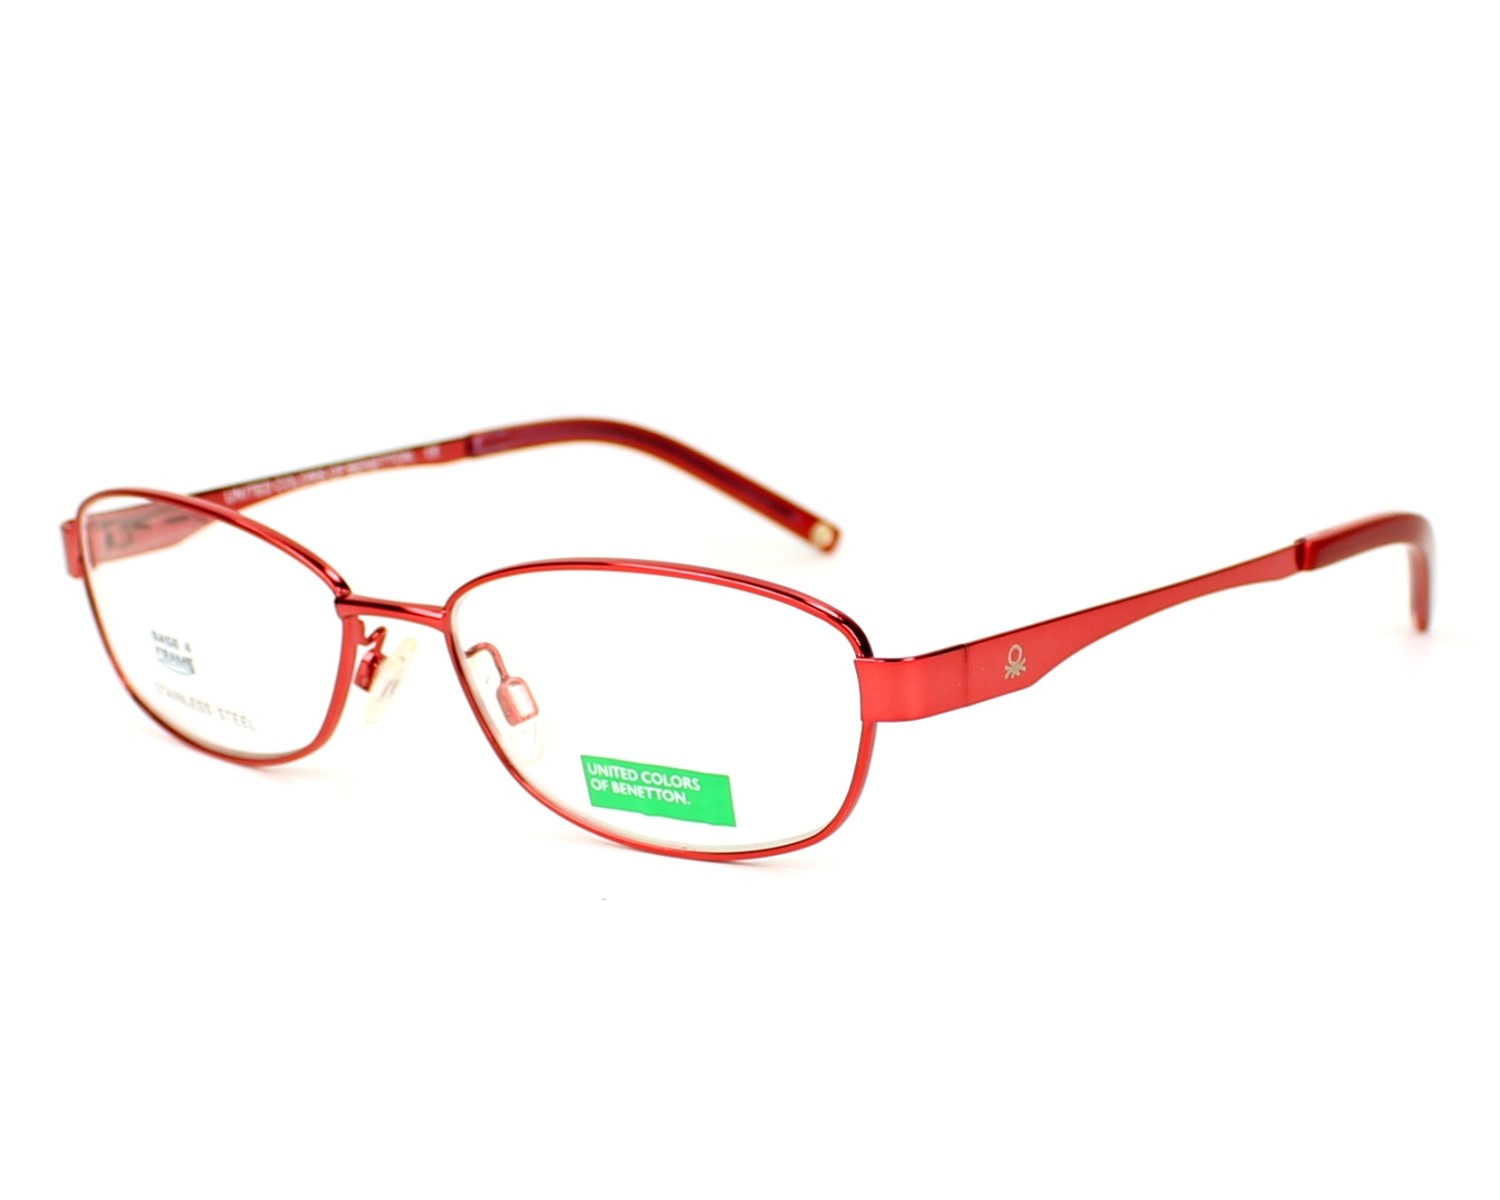 order your benetton eyeglasses be 255 03 51 today